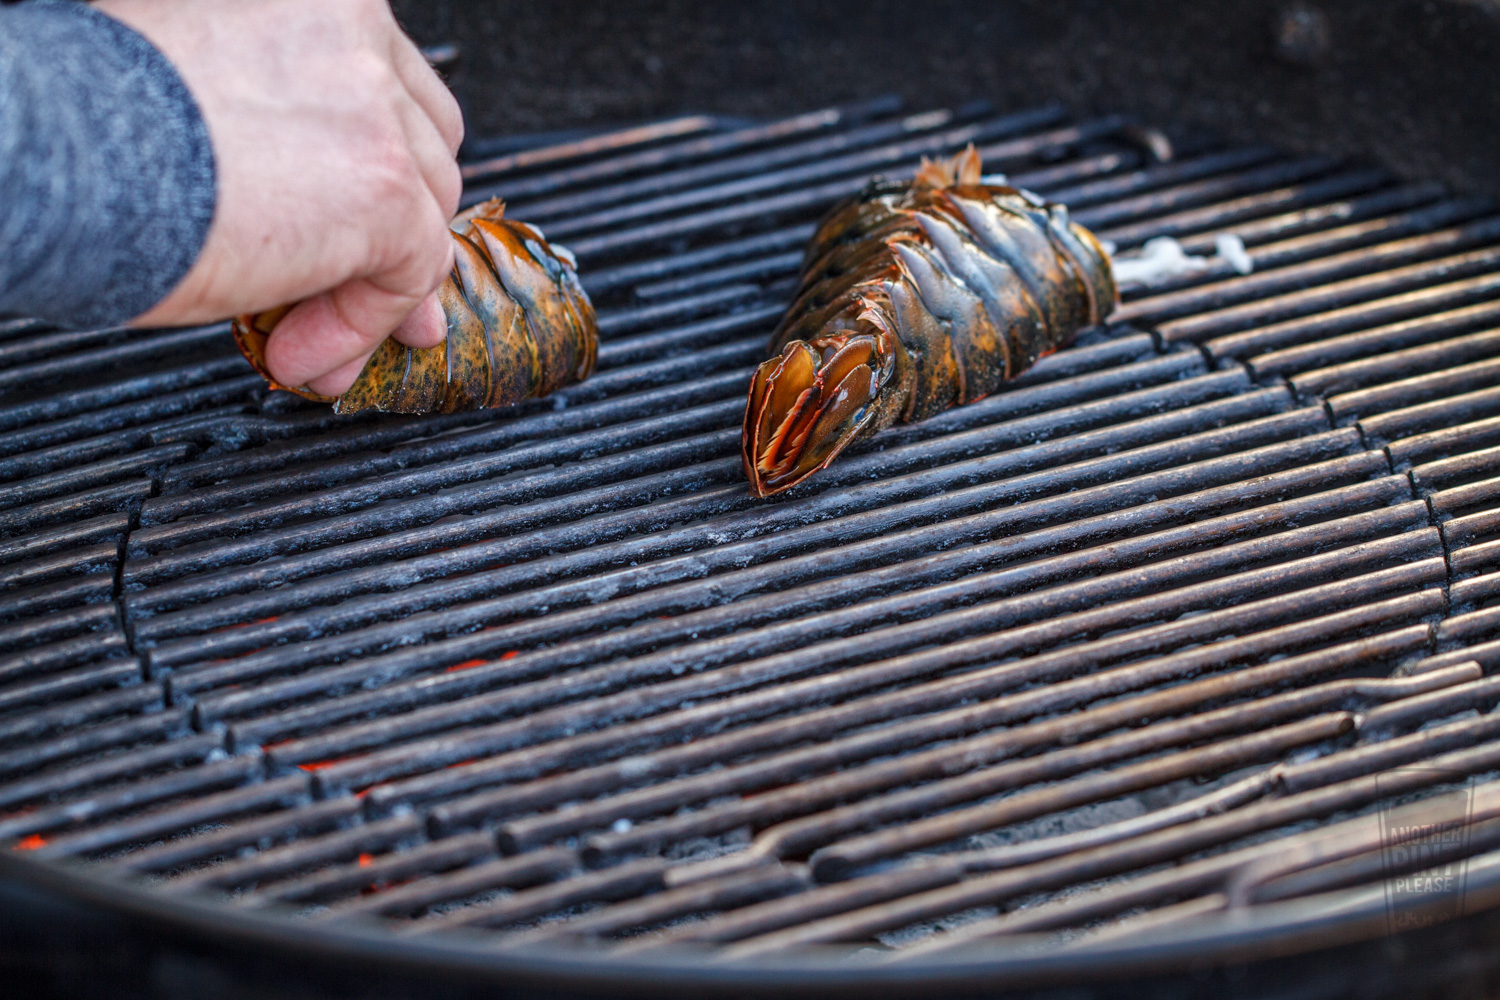 Losber Tails on Grill